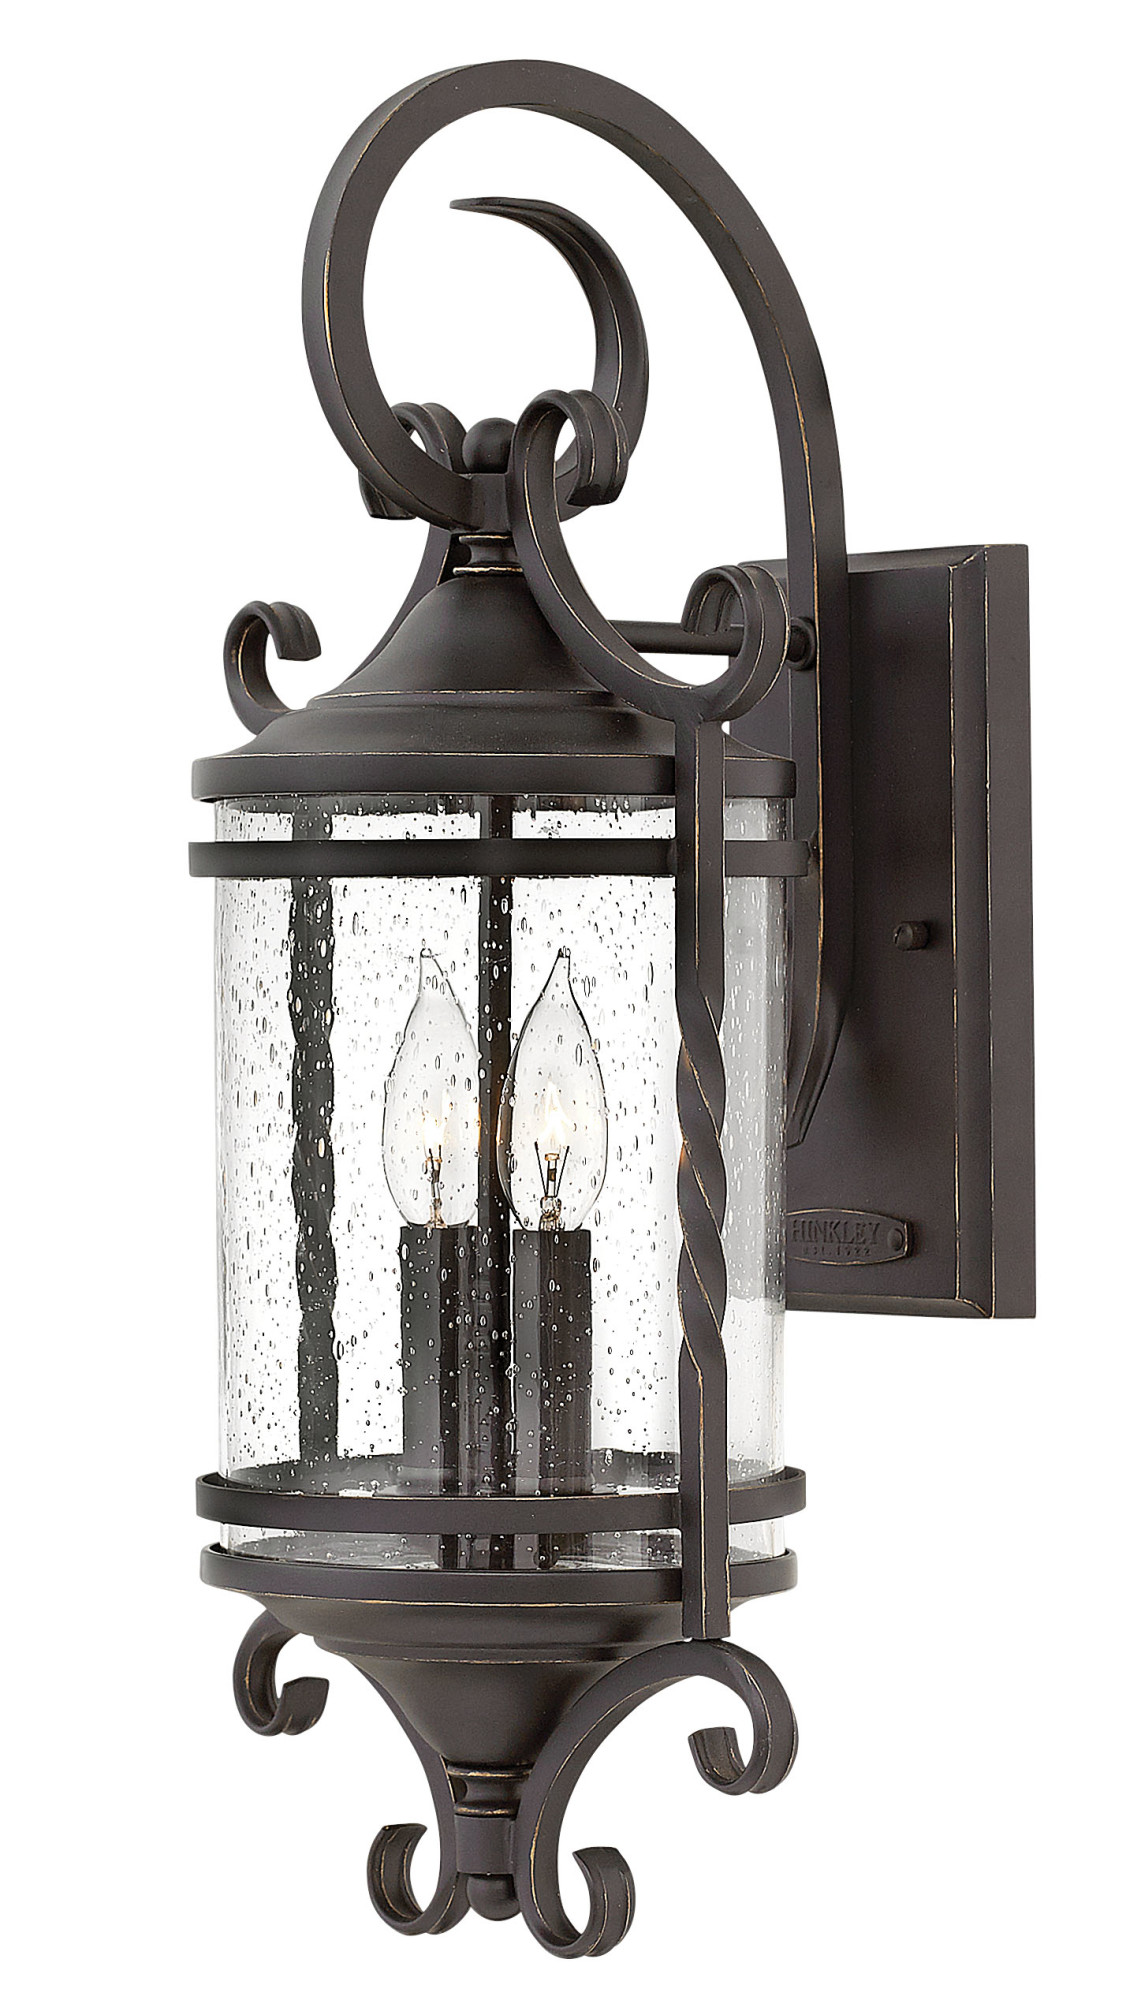 """Hinkley Lighting 1143-CL Casa 2-Light 21-1 2"""" High Outdoor Wall Sconce with Seedy Glass Shade by Hinkley Lighting"""